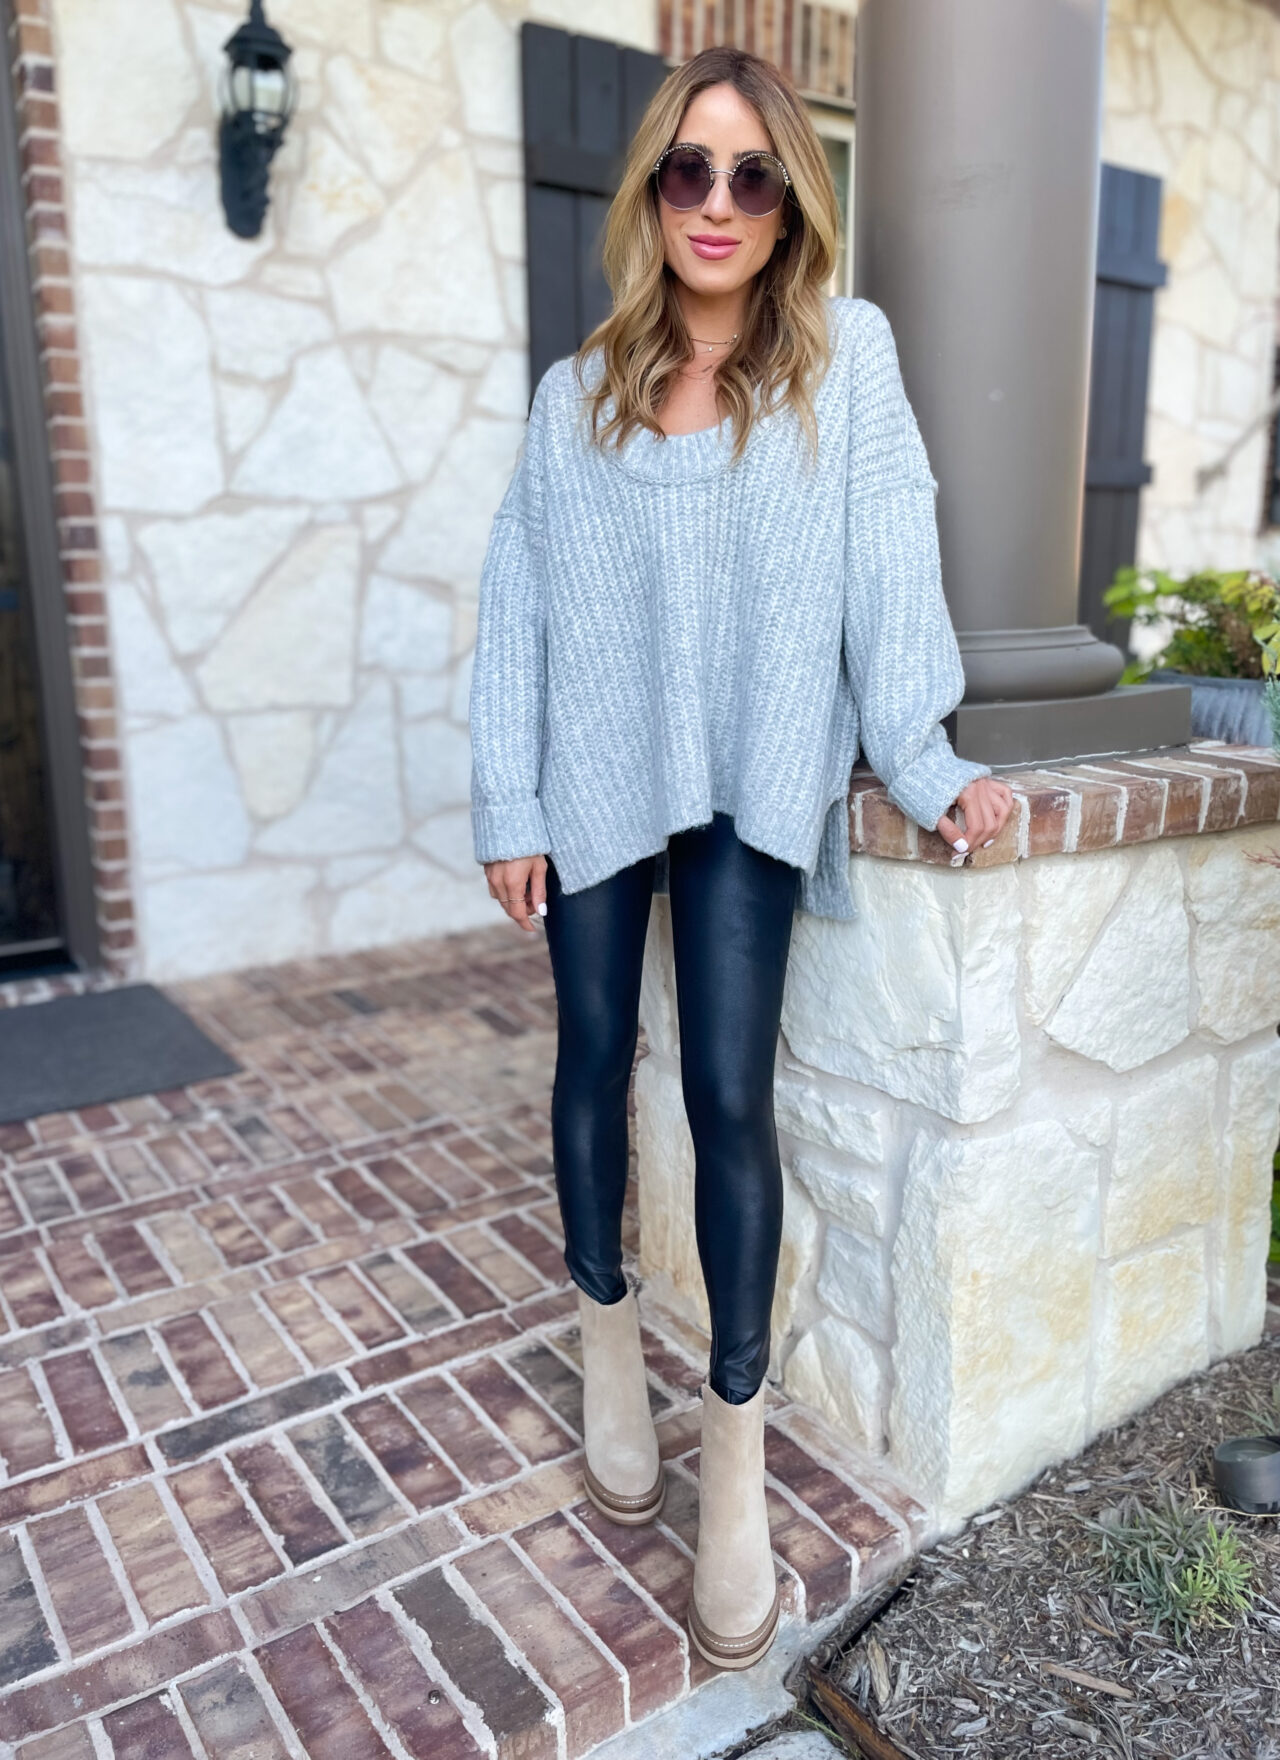 lifestyle and fashion bloggers alexis belbel sharing her october shopbop favorites | adoubledose.com